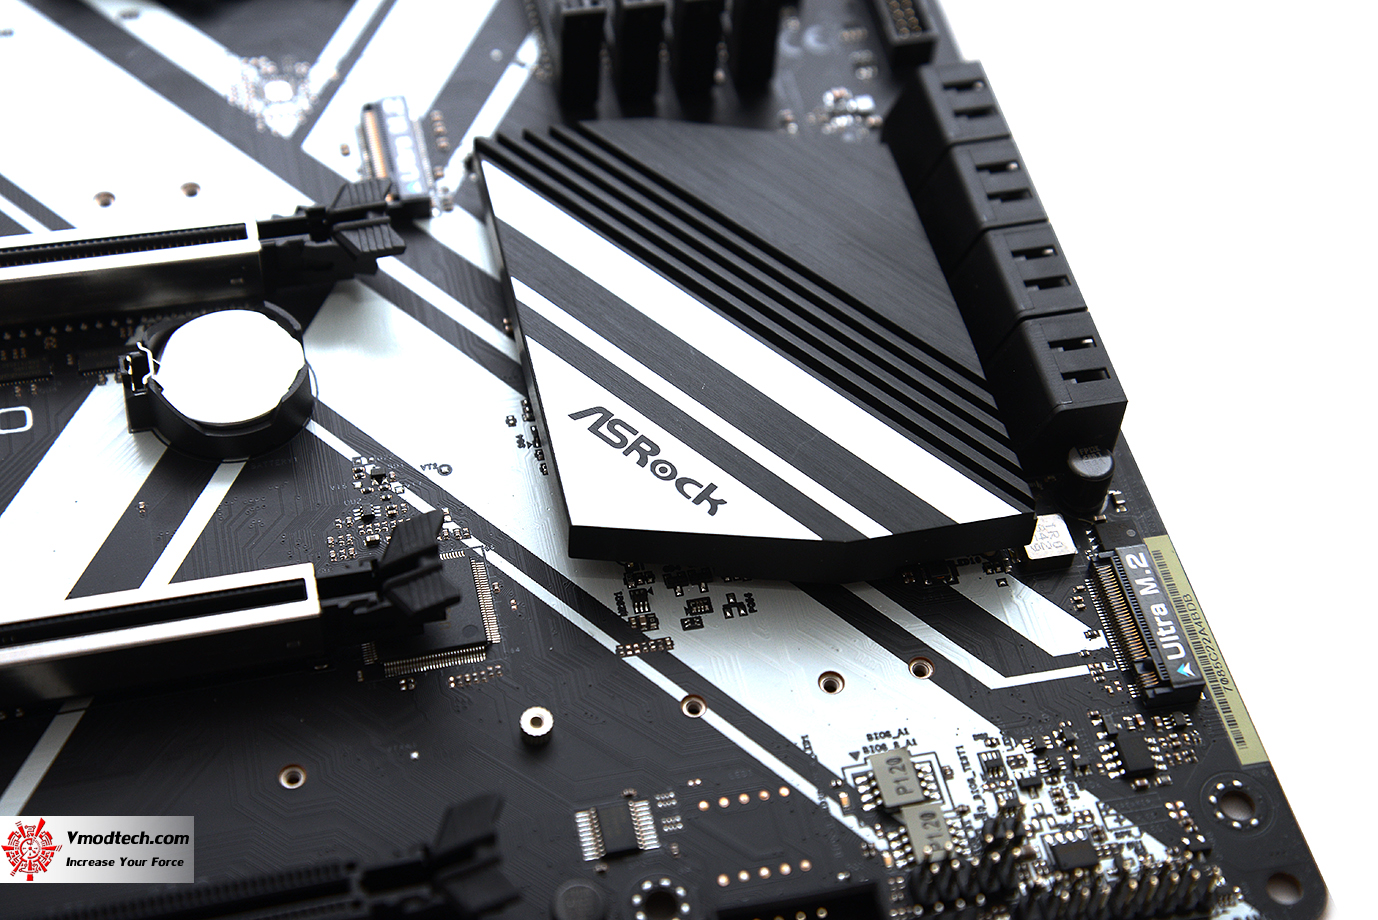 dsc 0460 ASRock Z270 Extreme4 Review